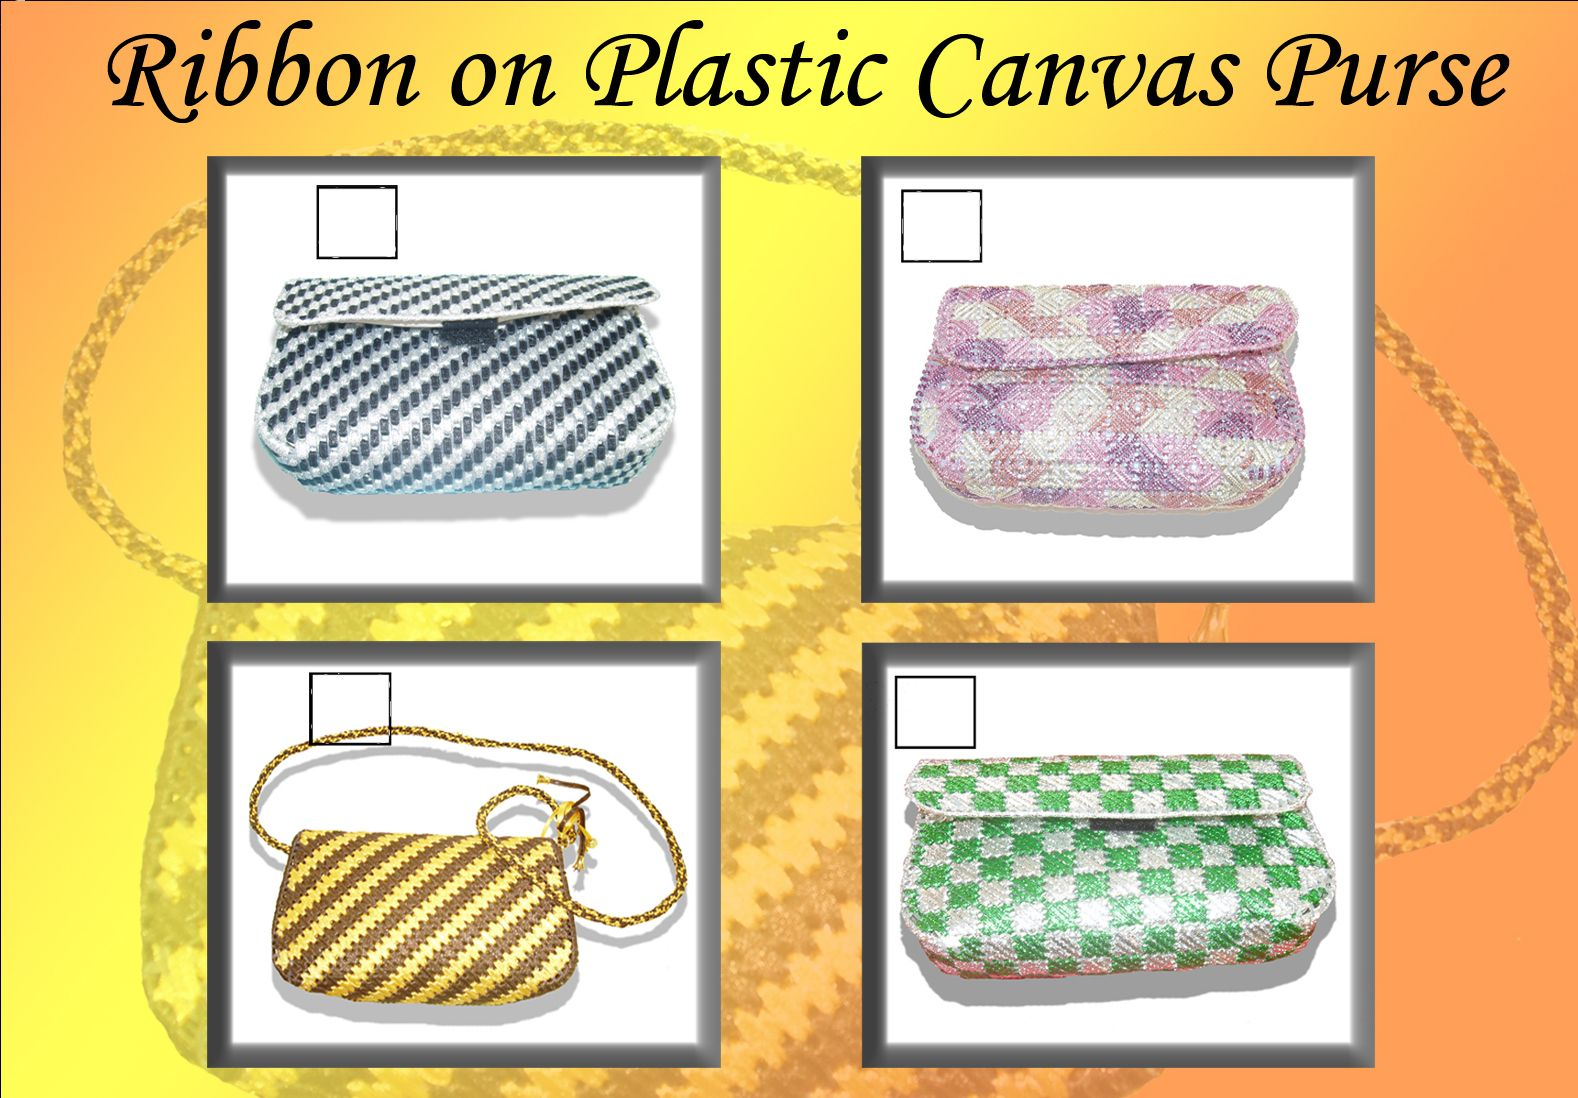 1/4 and 1/18 inch wide ribbons are used on these plastic canvas purses.